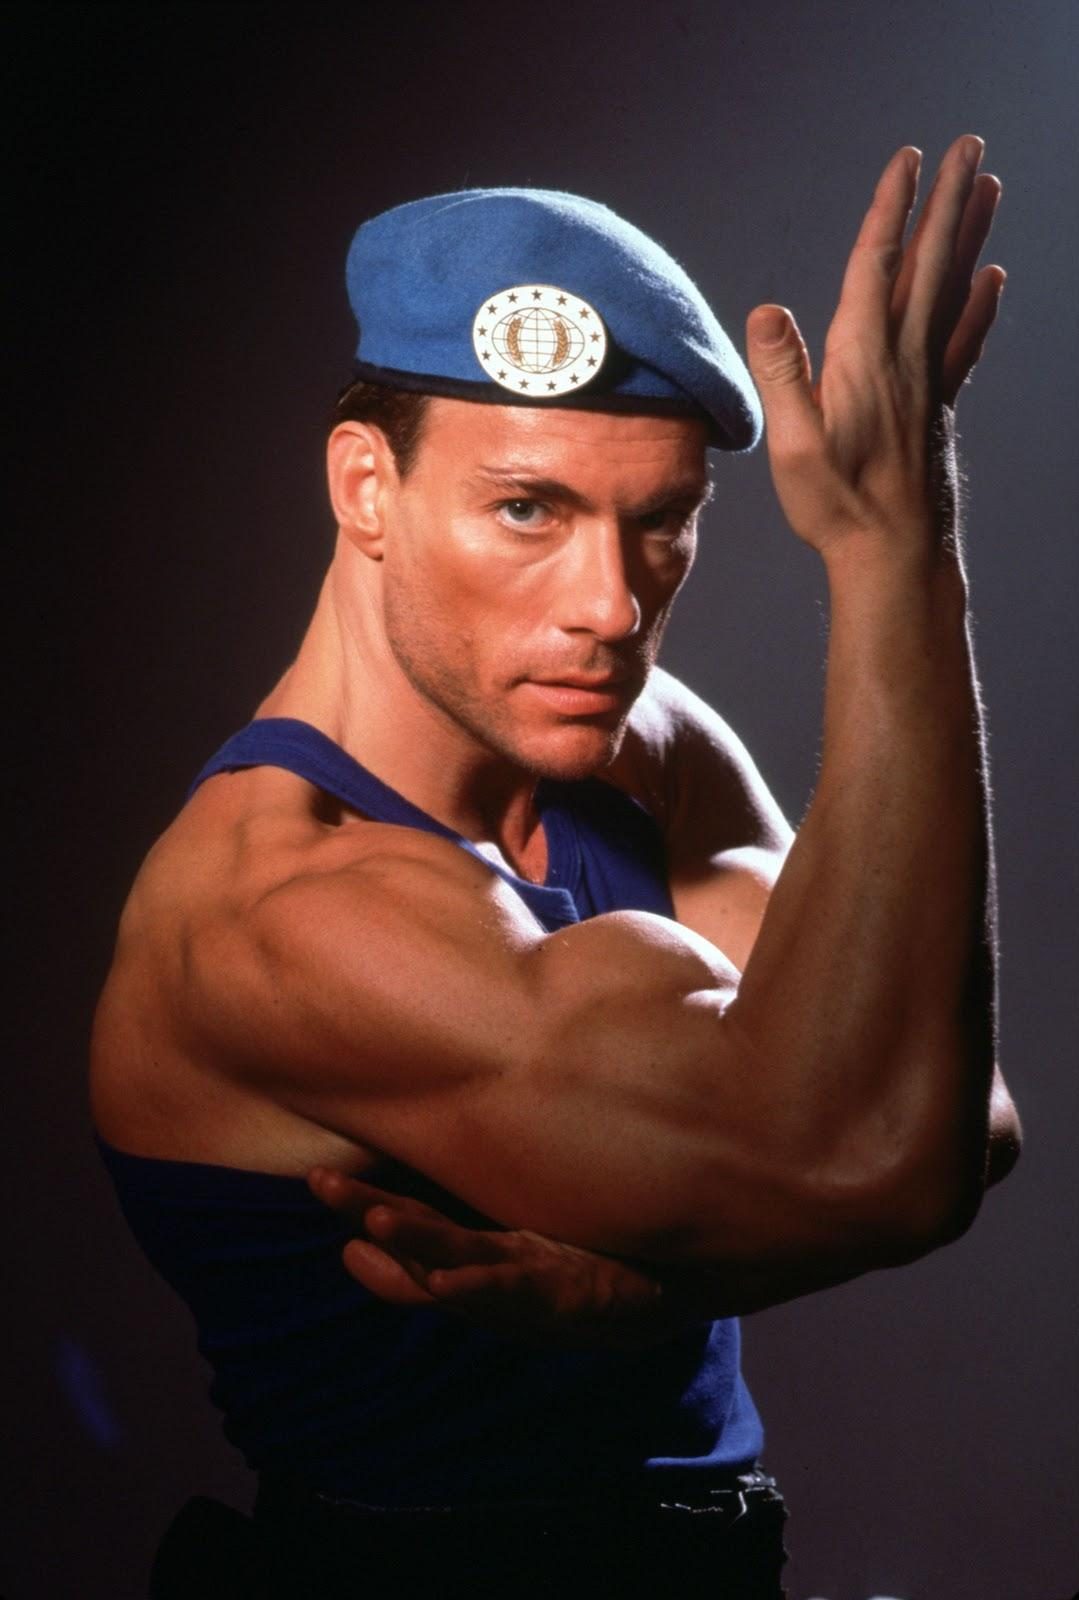 Jean Claude Van Damme Wallpapers High Quality Download Free